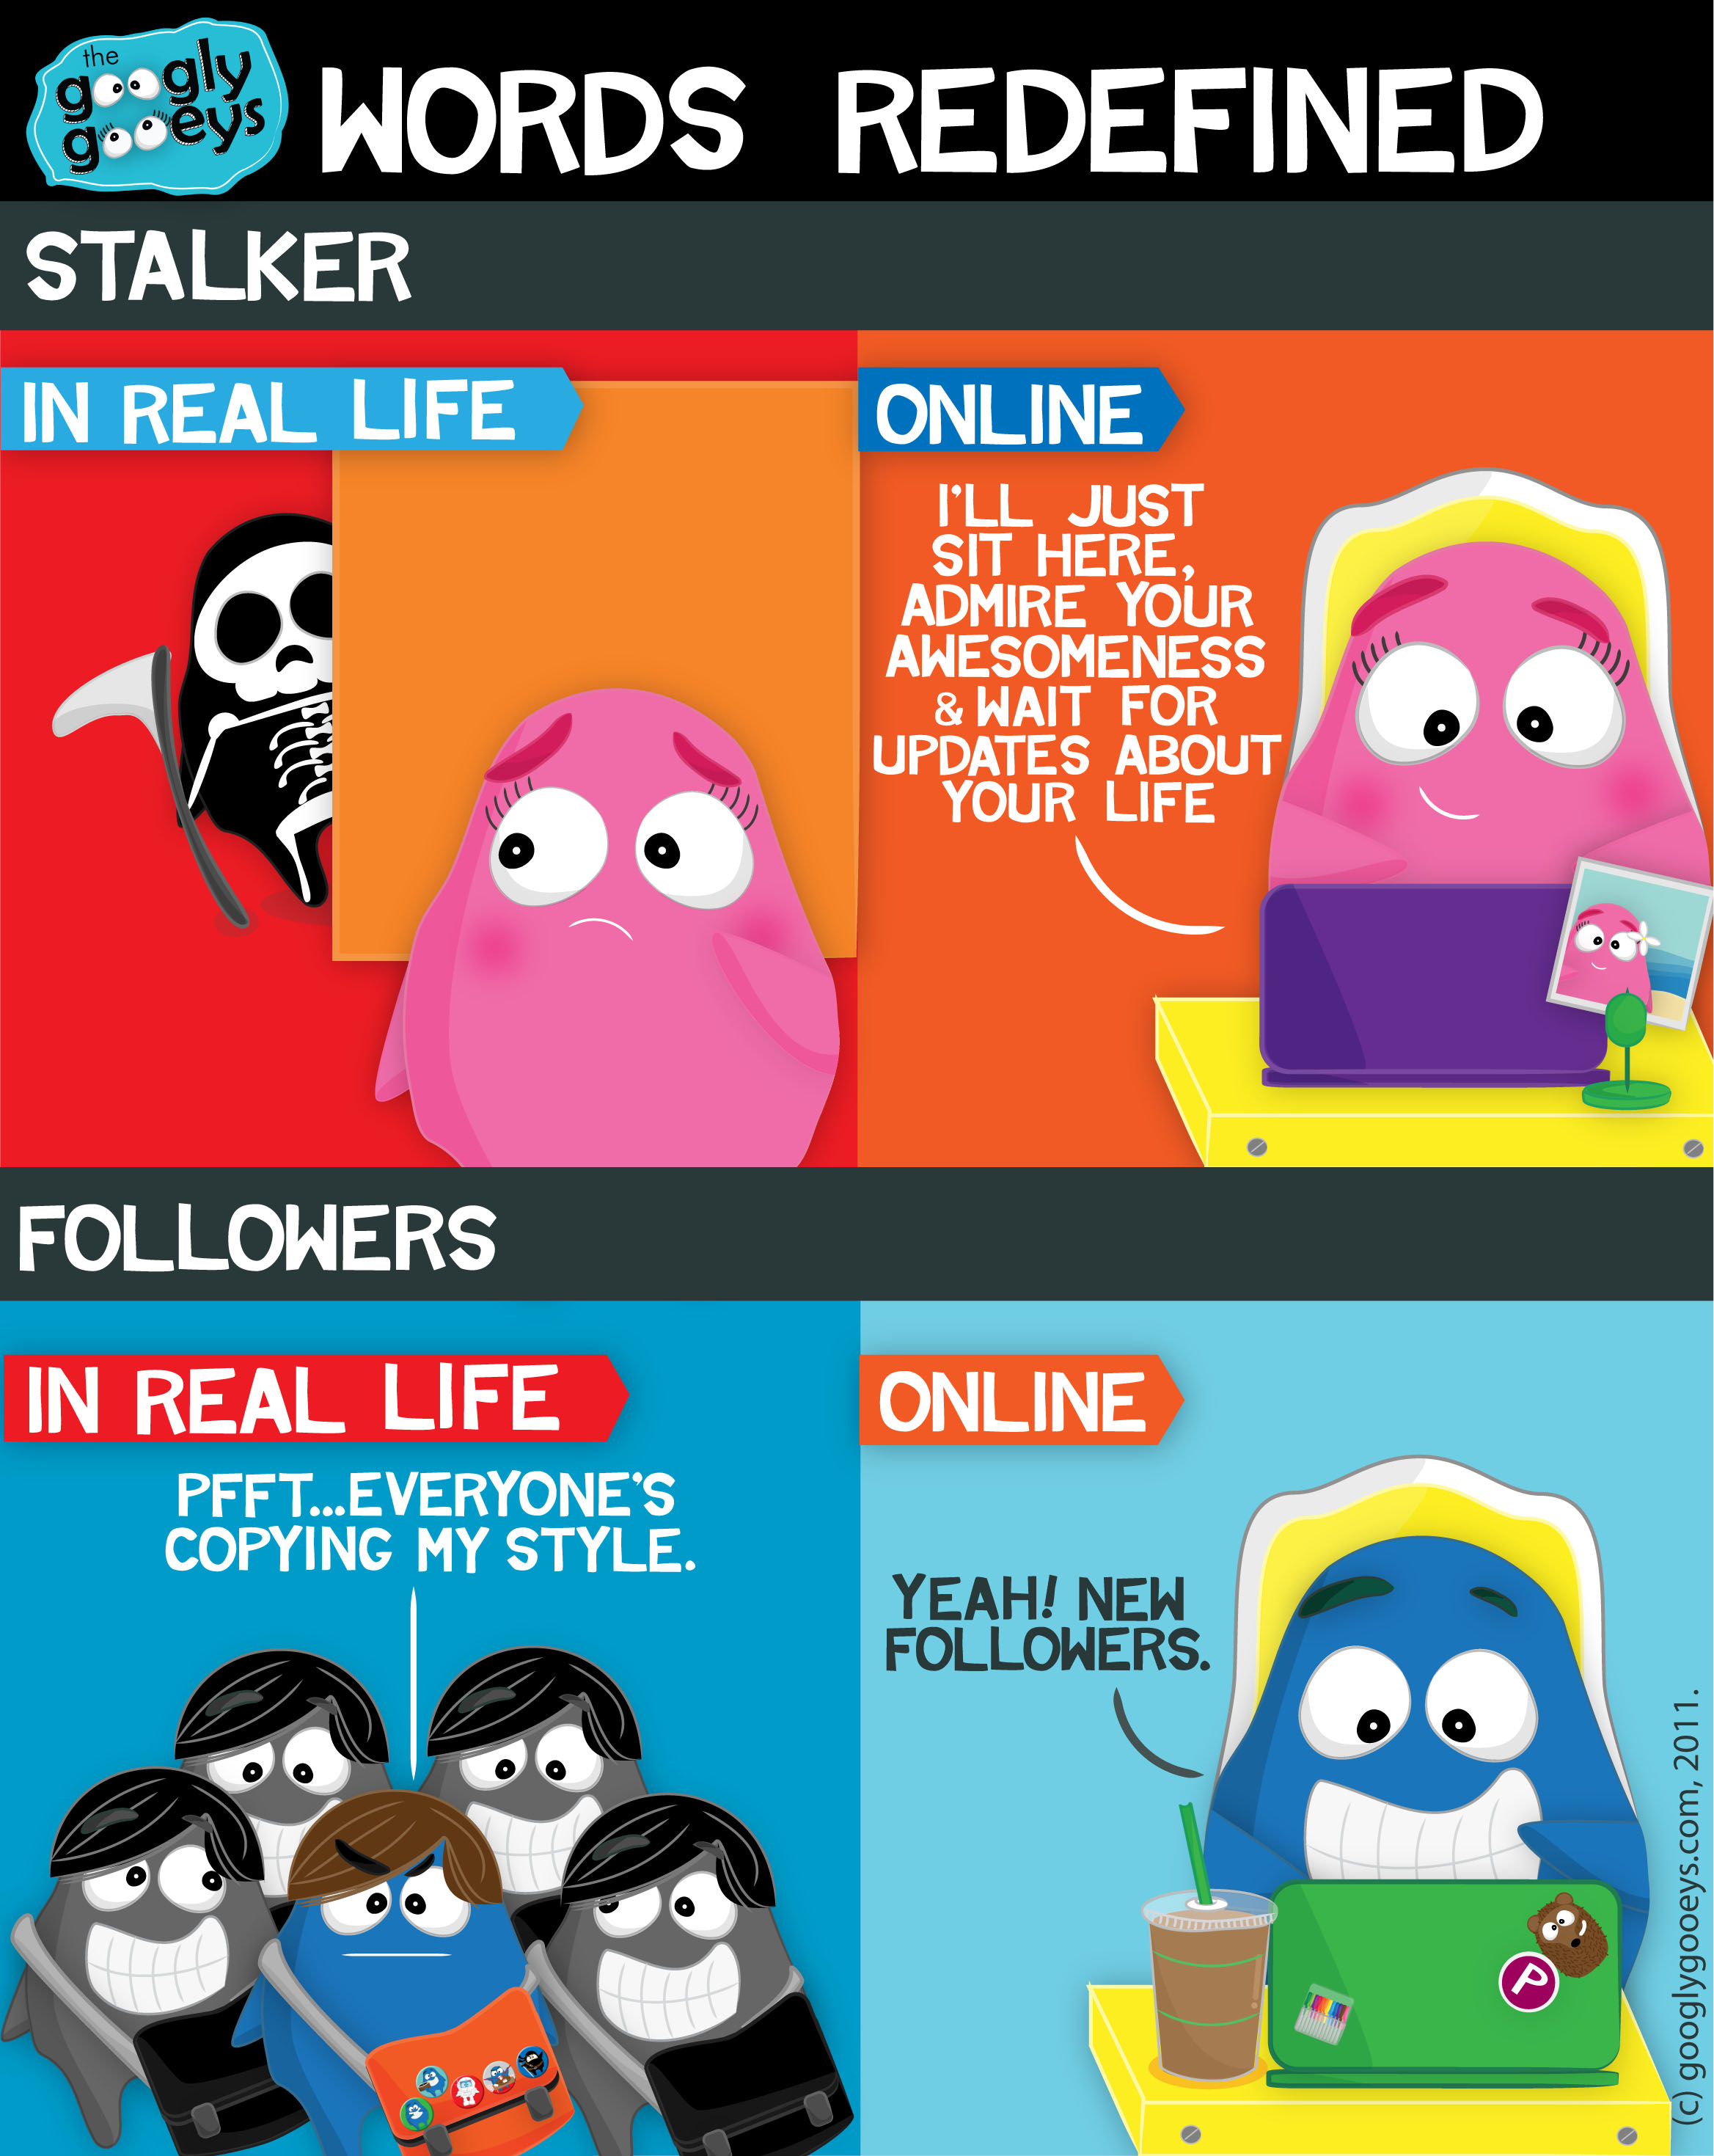 Online Stalkers + Followers: Words Redefined